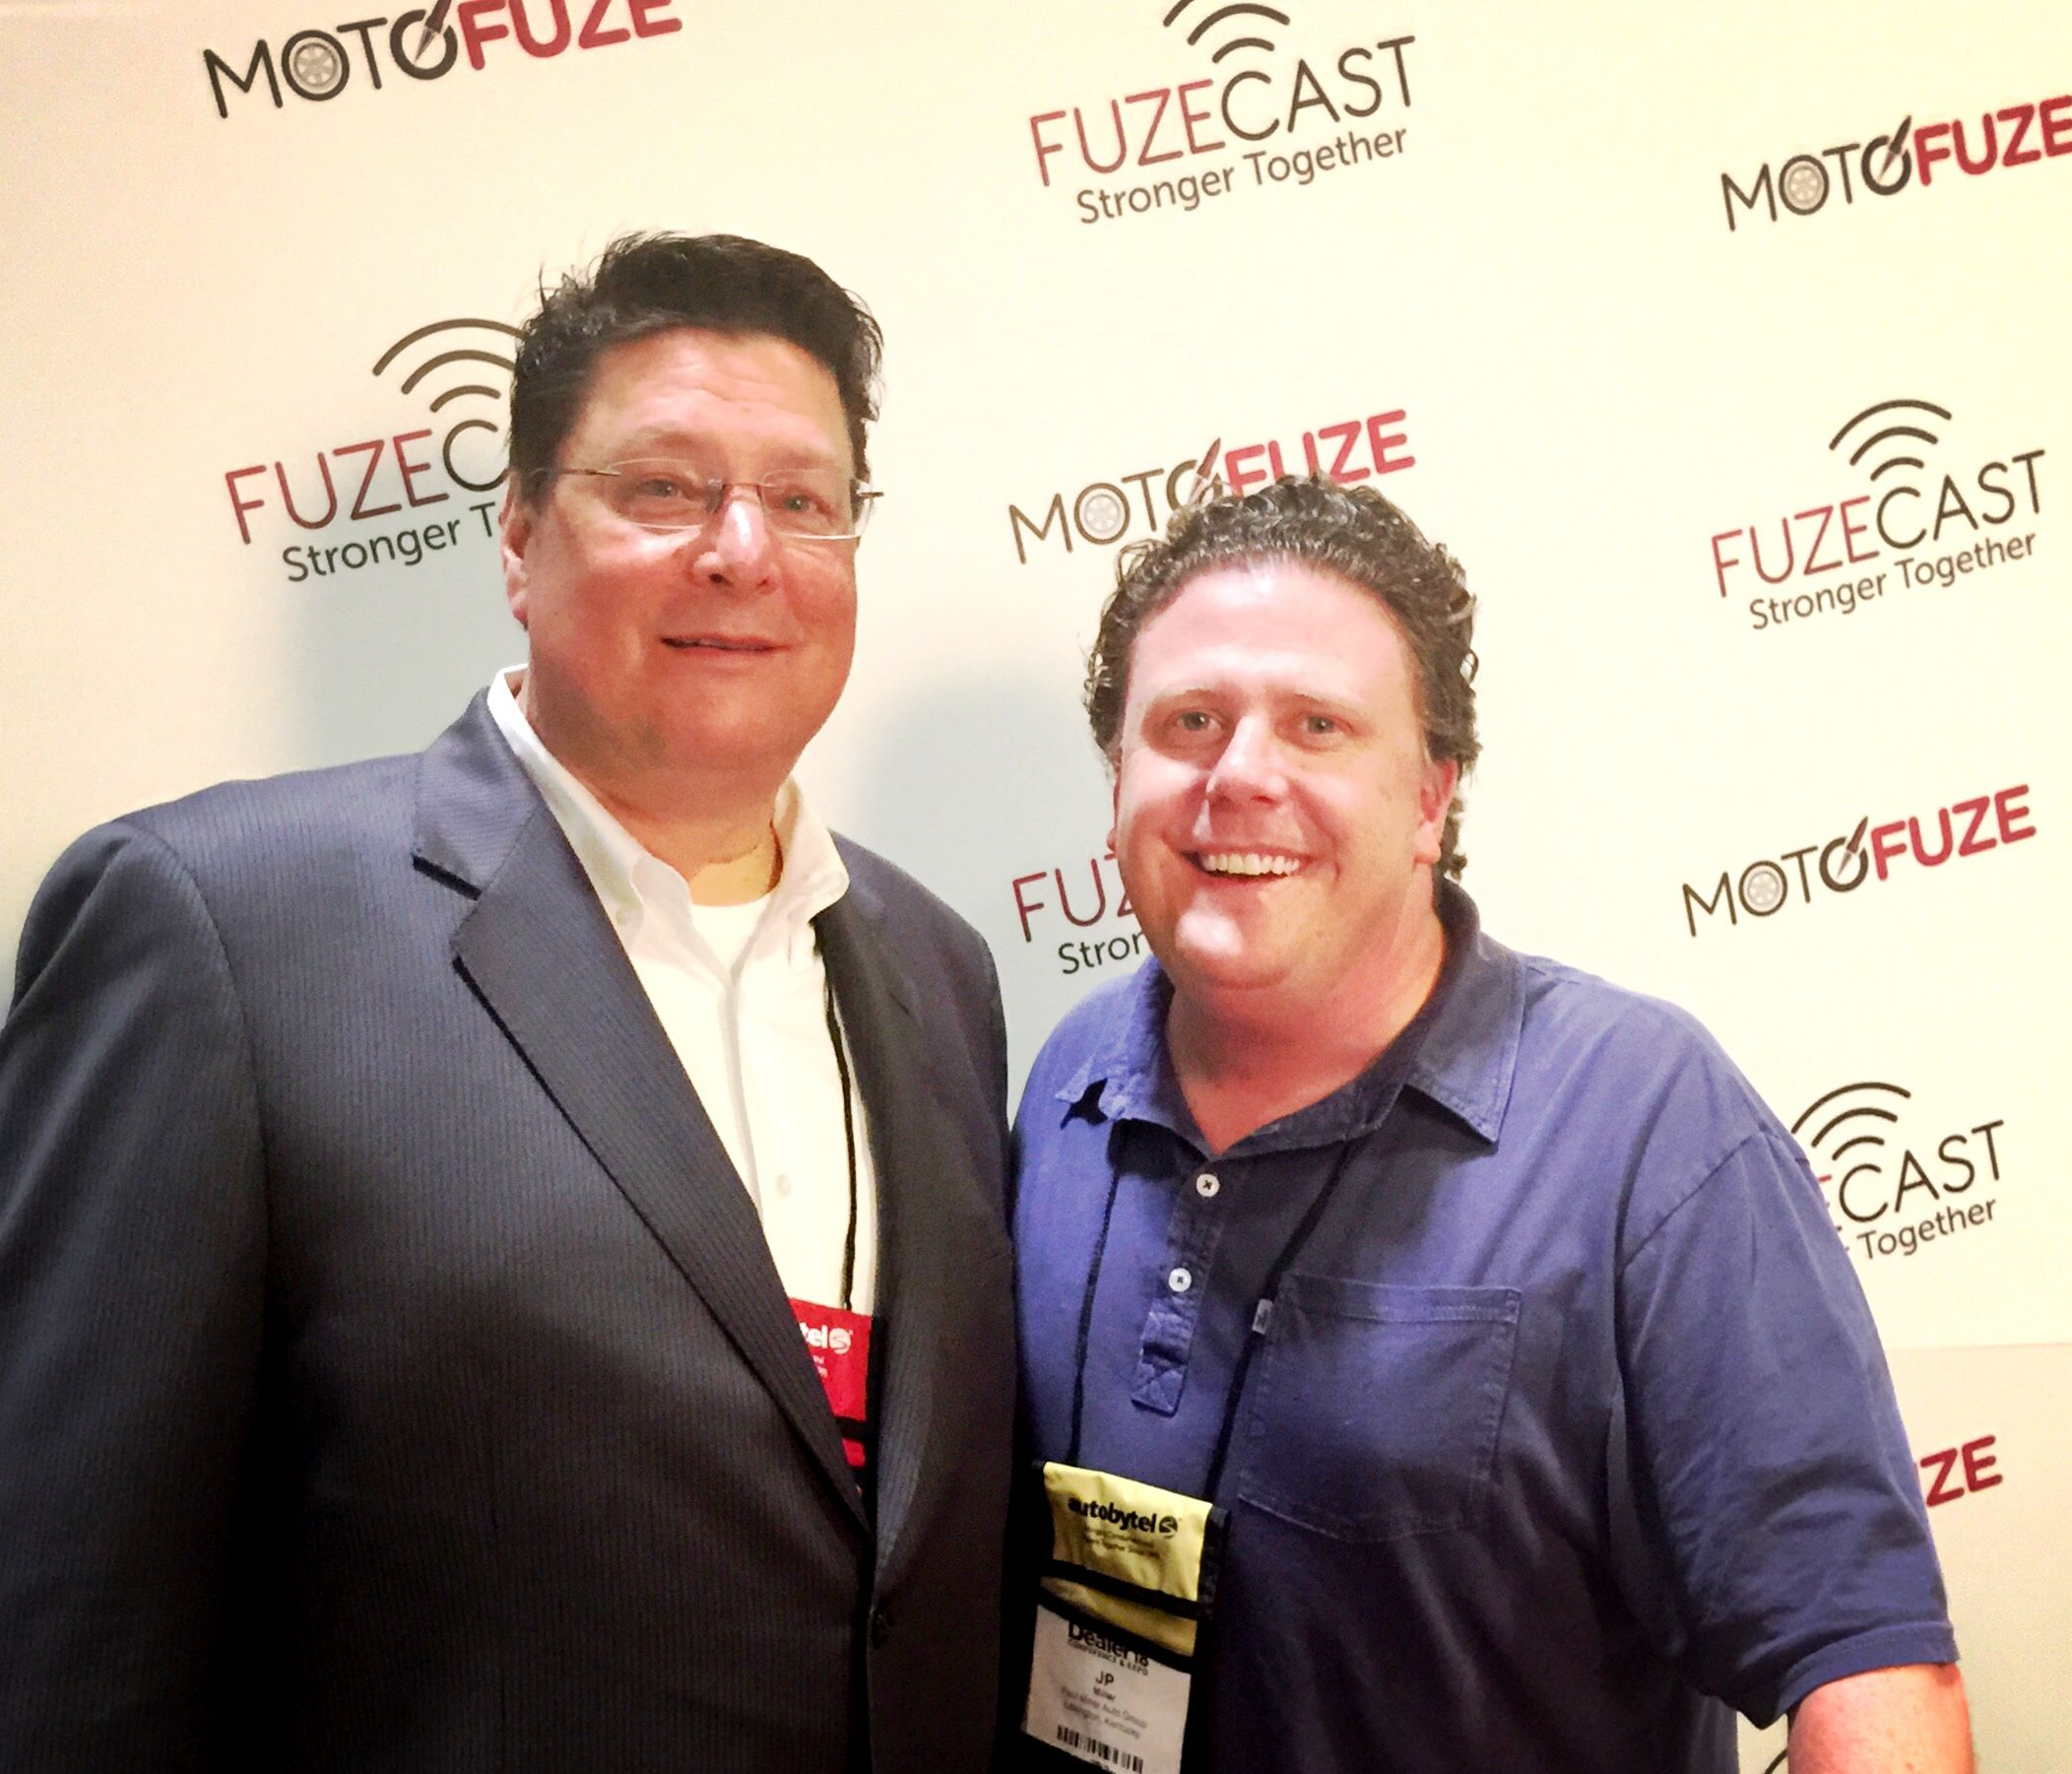 Paul Miller Auto Group chooses MotoFuze Be the next dealership to